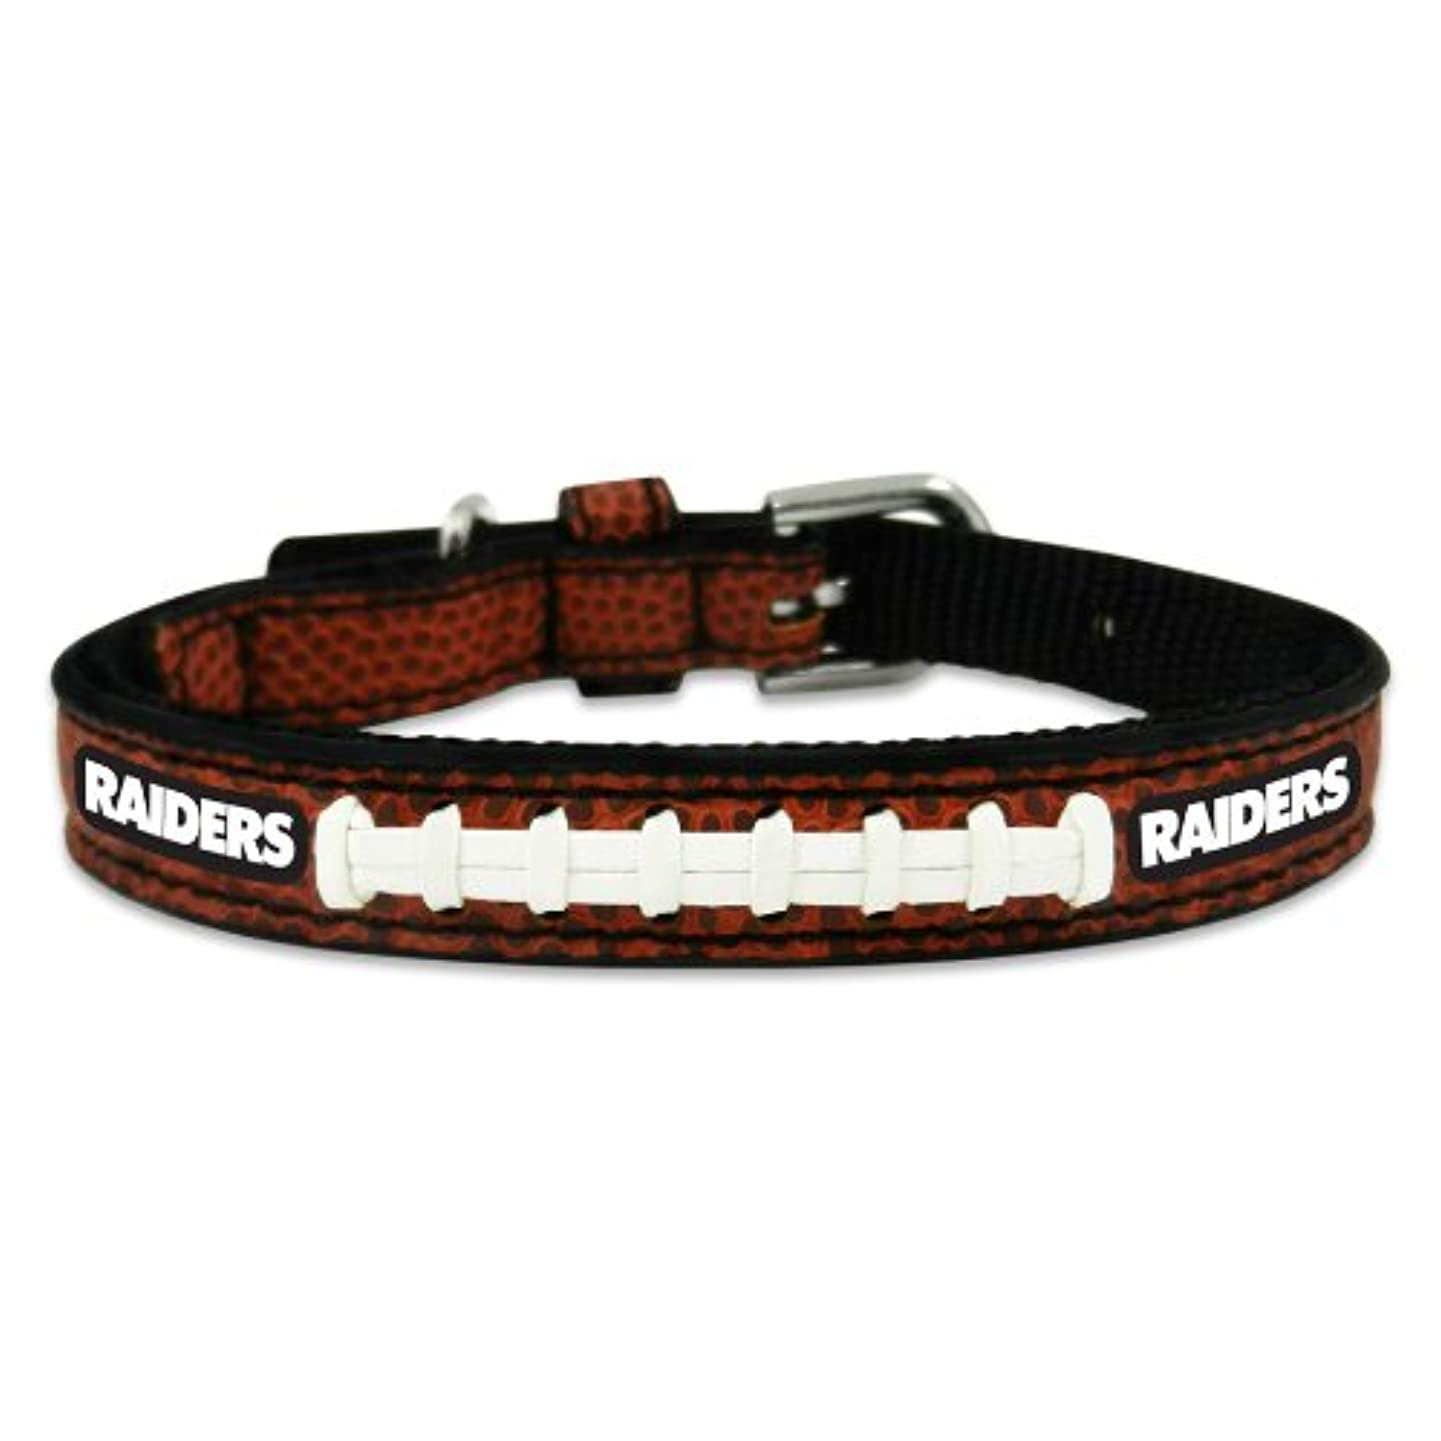 確実トロイの木馬調停するOakland Raiders Classic Leather Toy Football Collar